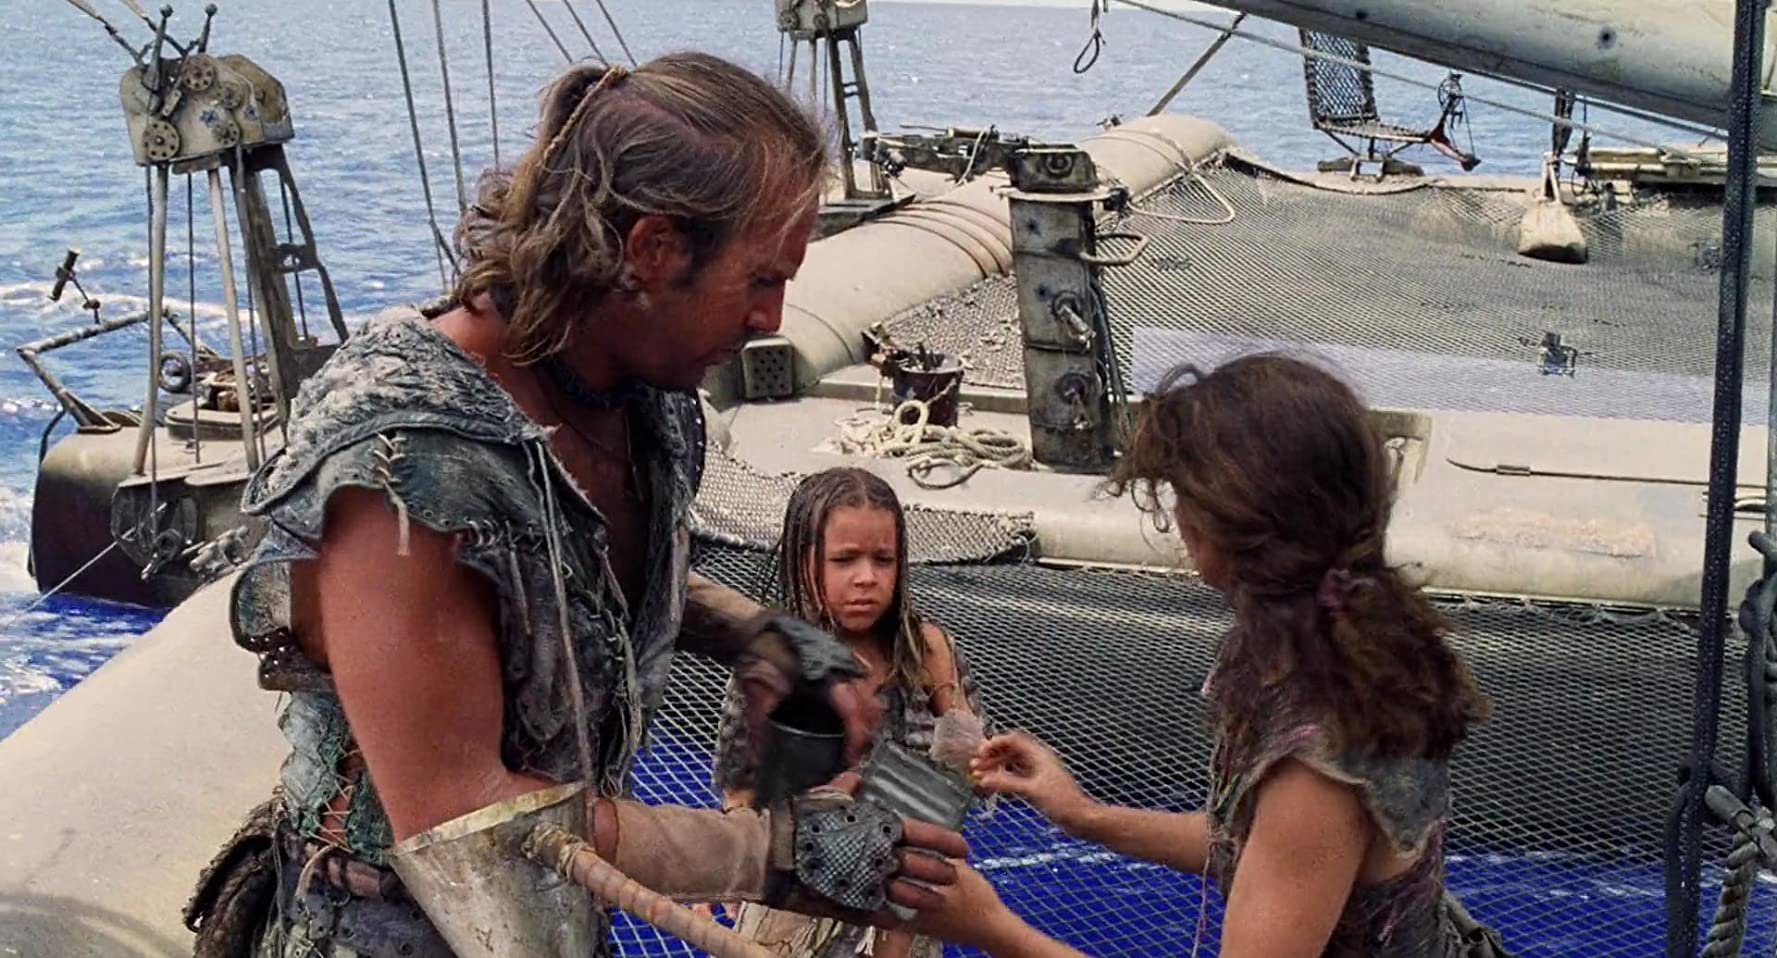 Kevin Costner, Jeanne Tripplehorn, and Tina Majorino in Waterworld (1995)